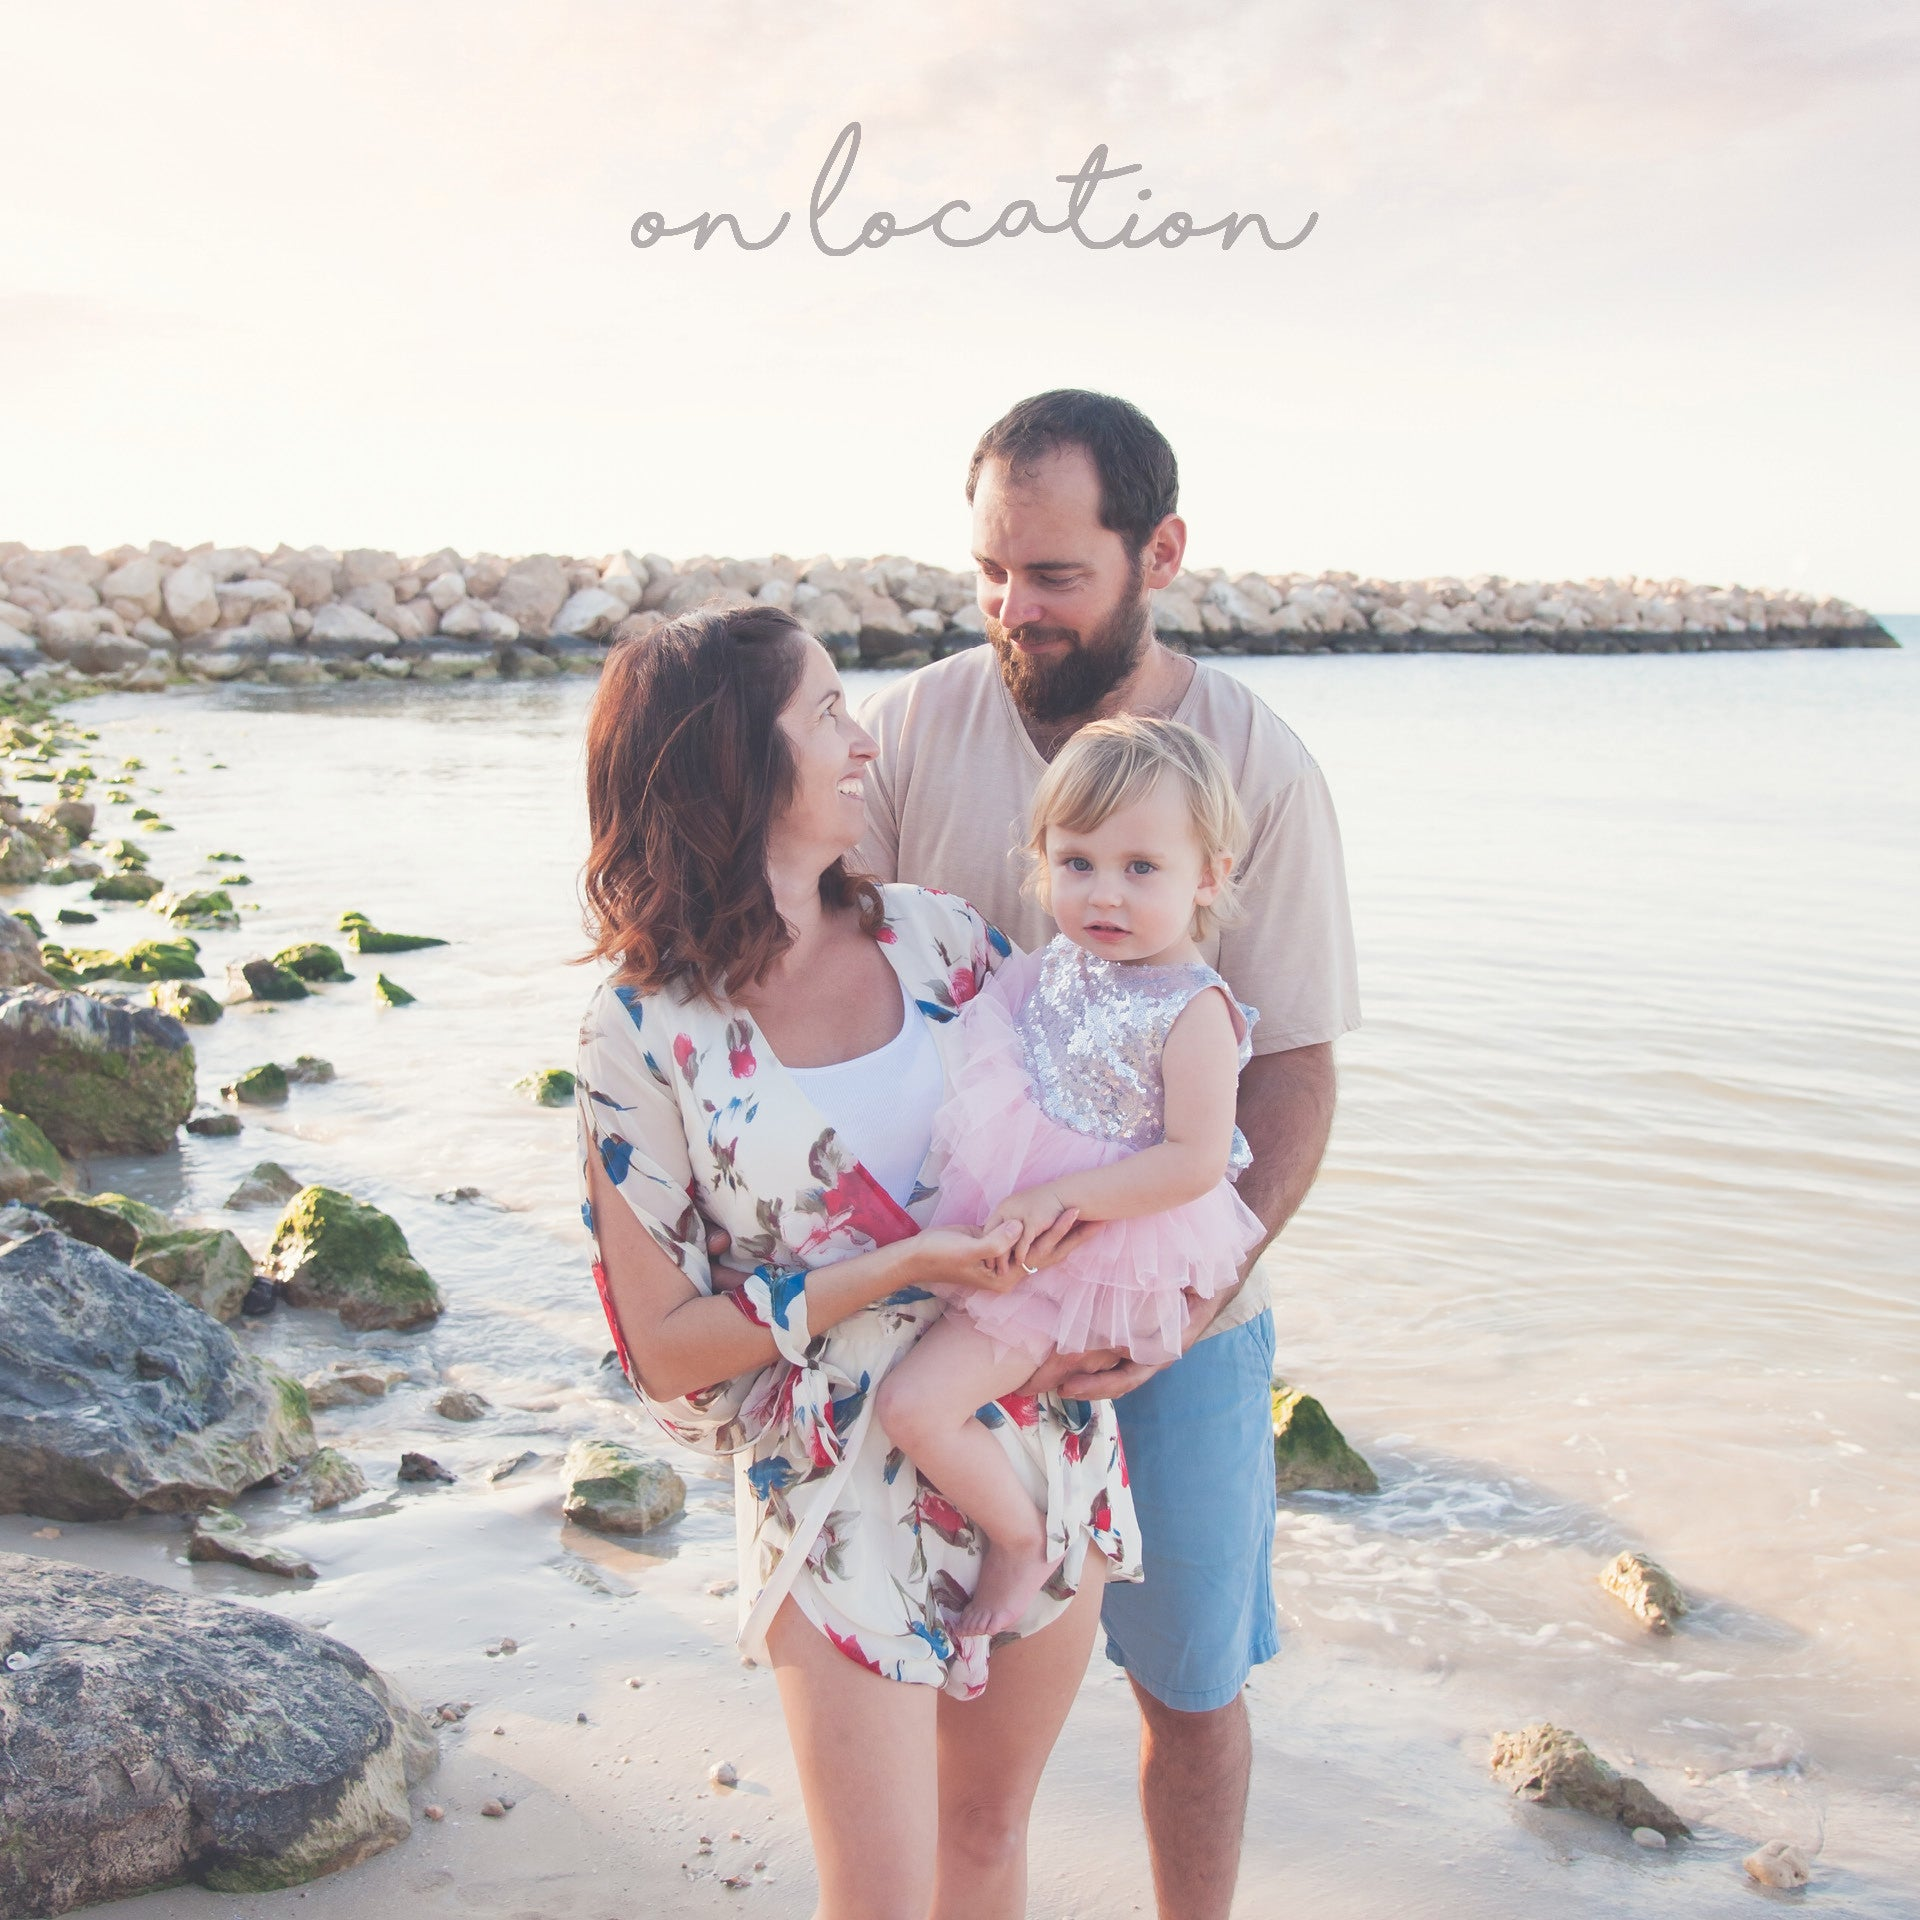 Location Family + Portraits